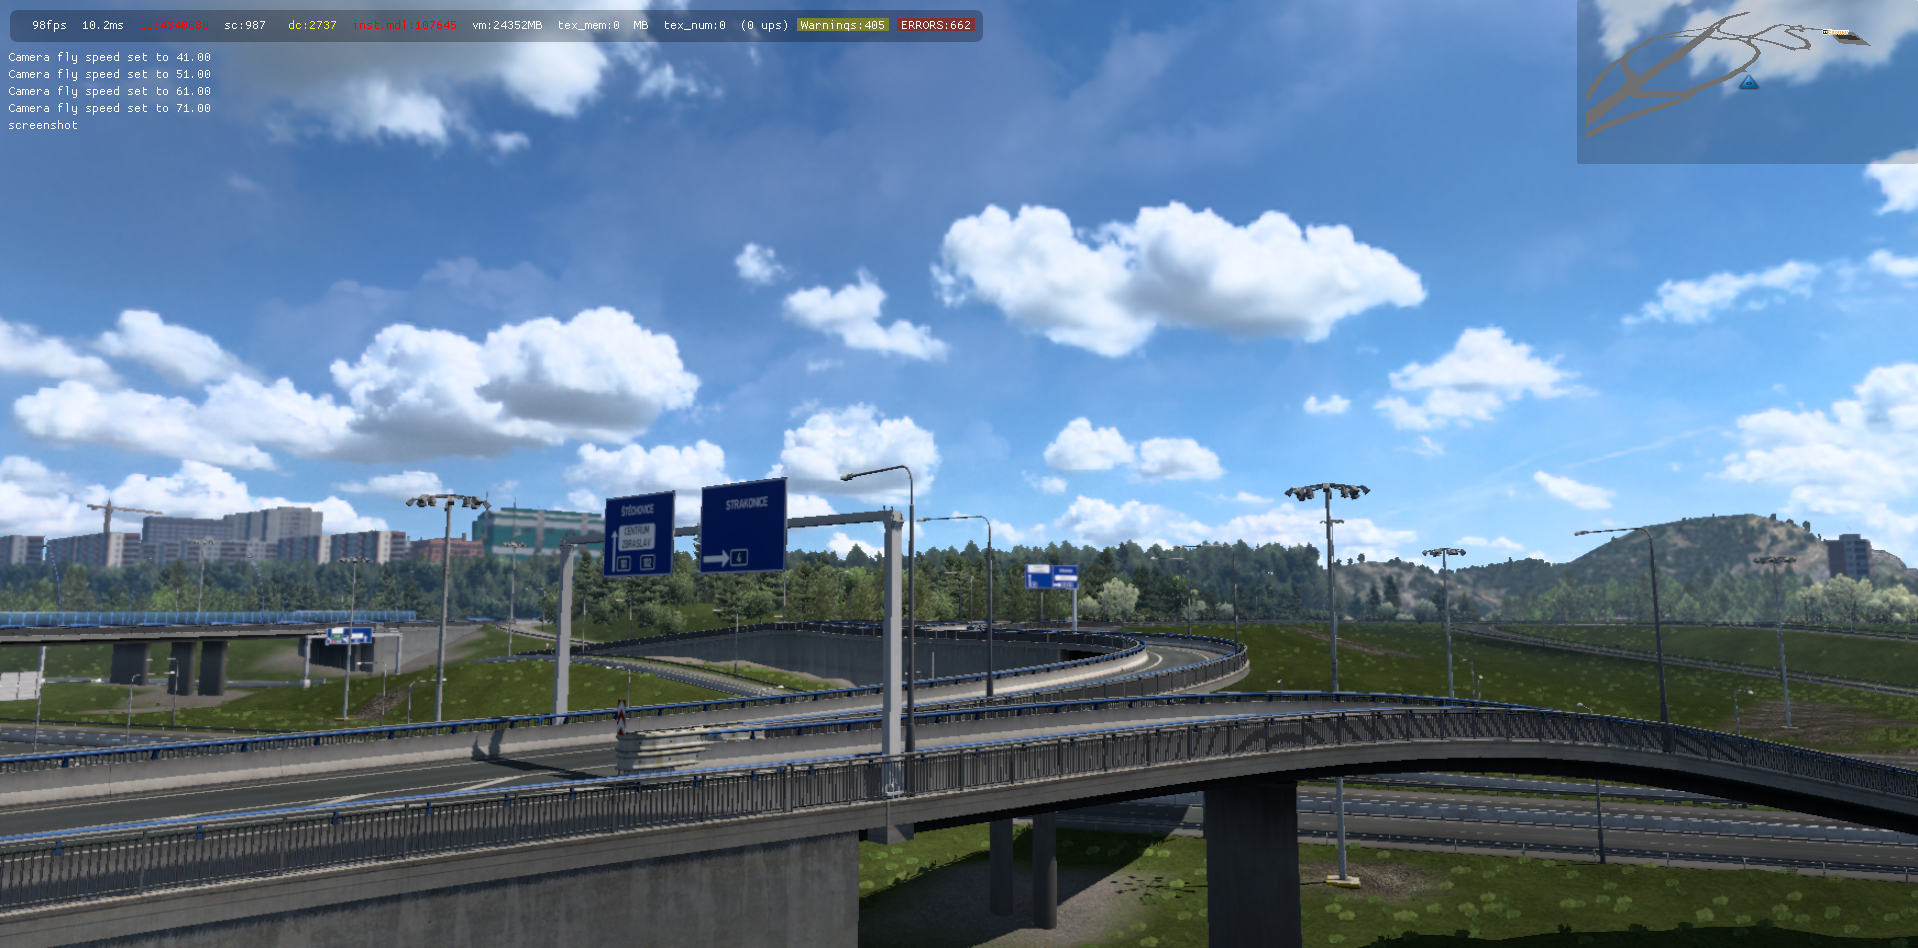 ets2_20210730_000849_00.png